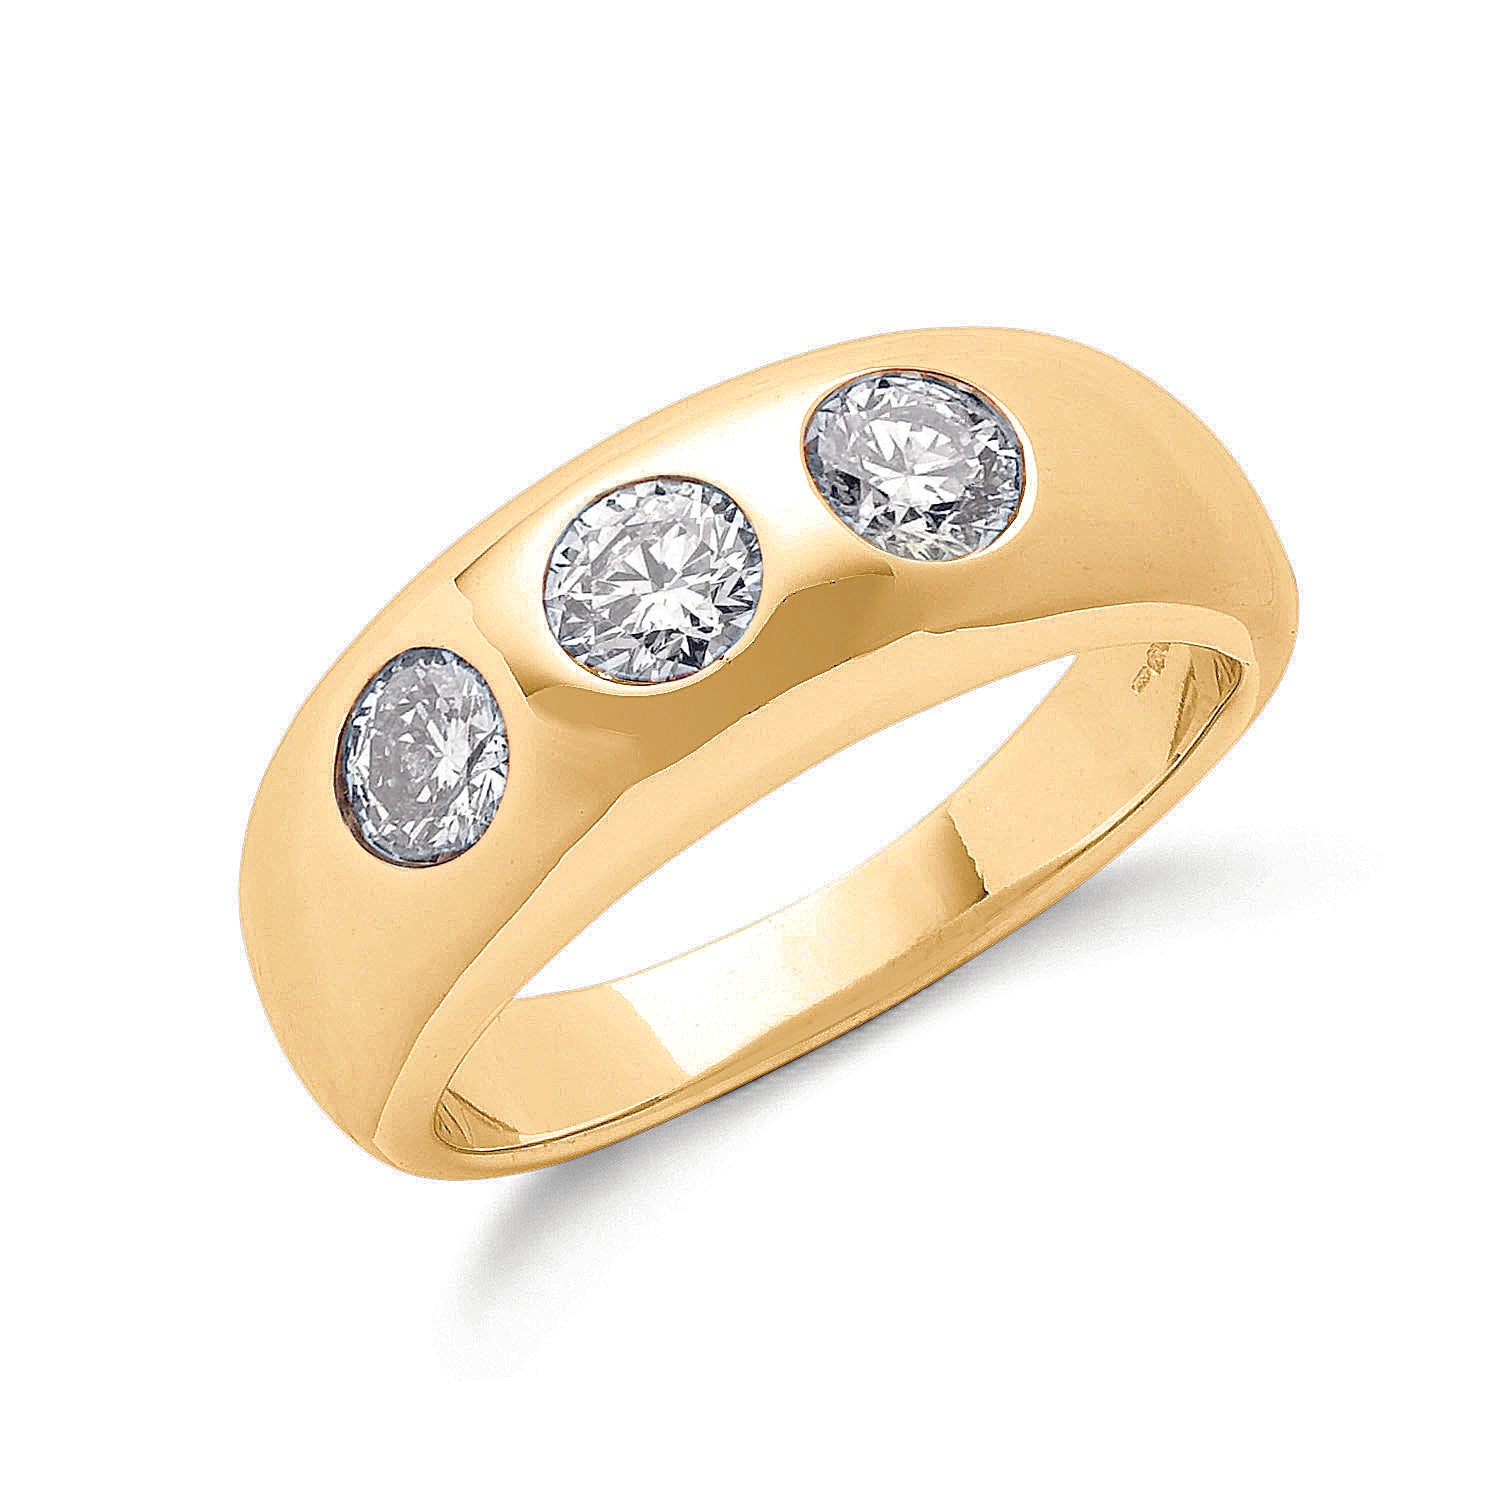 zm white carat jaredstore tw zoom cut stone jar to ring mv gold hover jared diamond round en